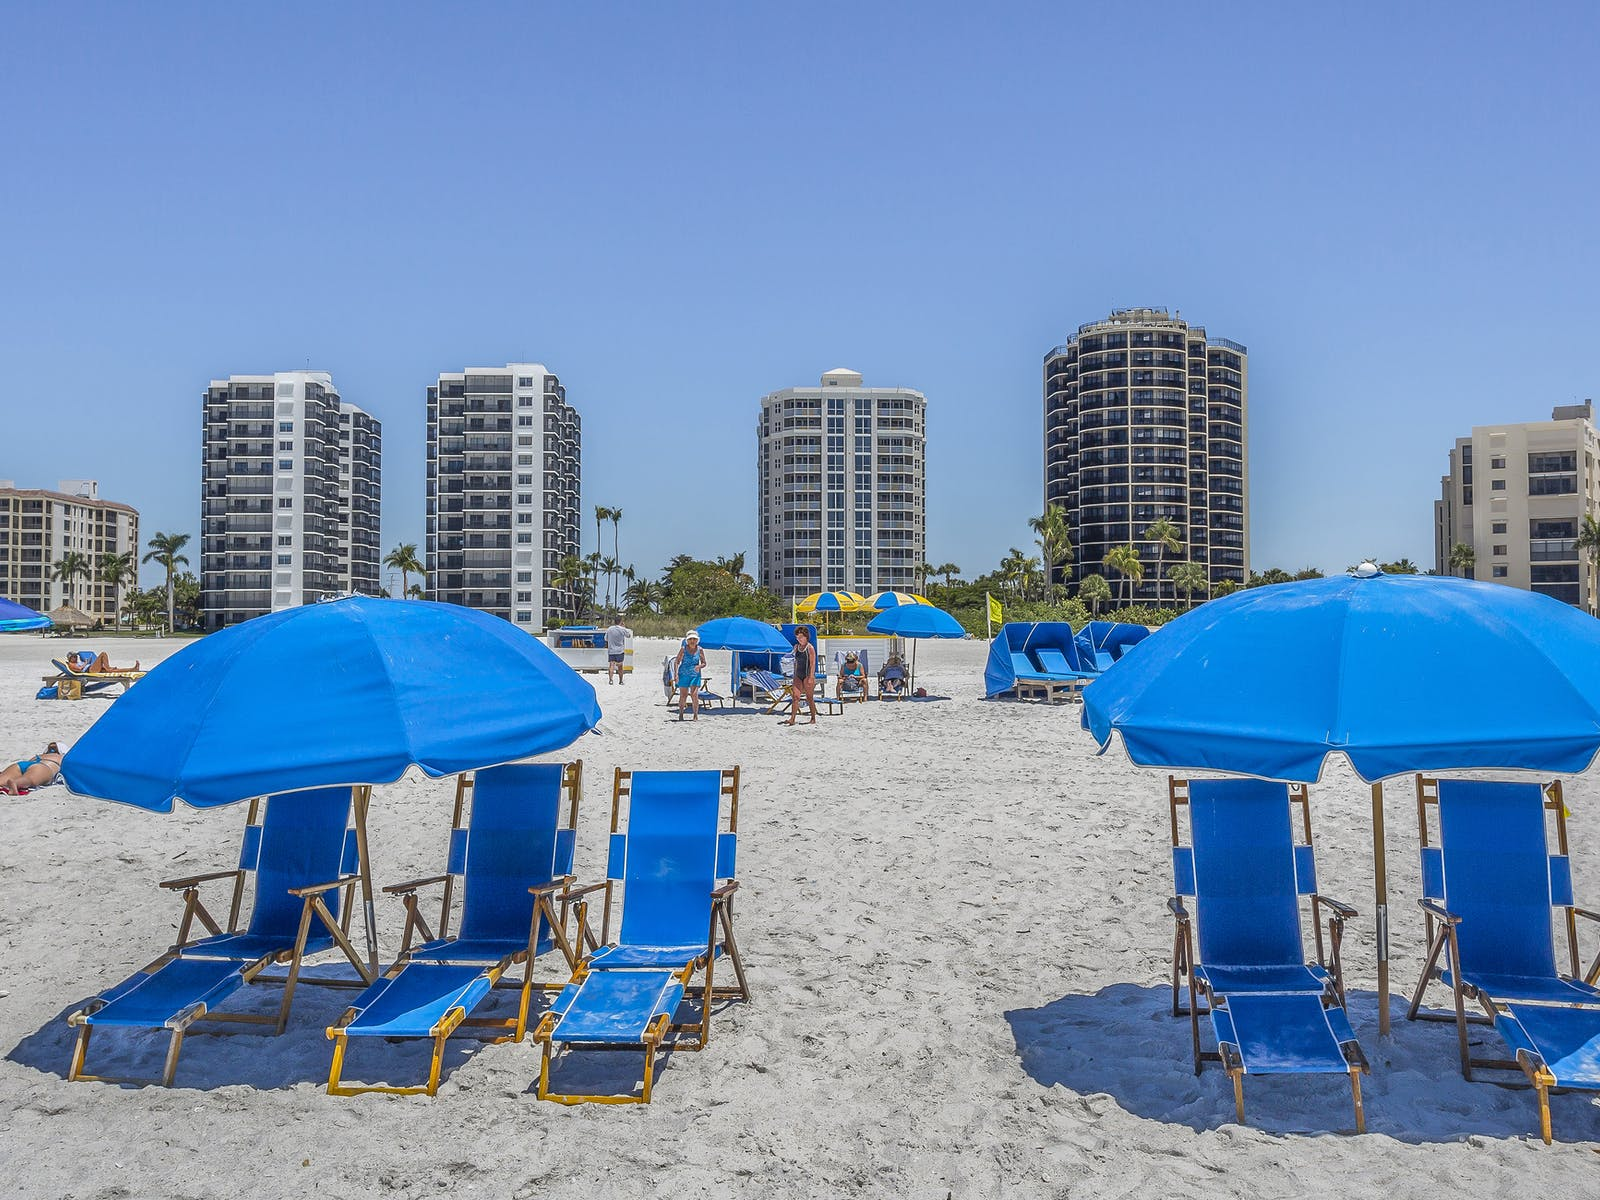 beach in sanibel, florida with large condo buildings in the background